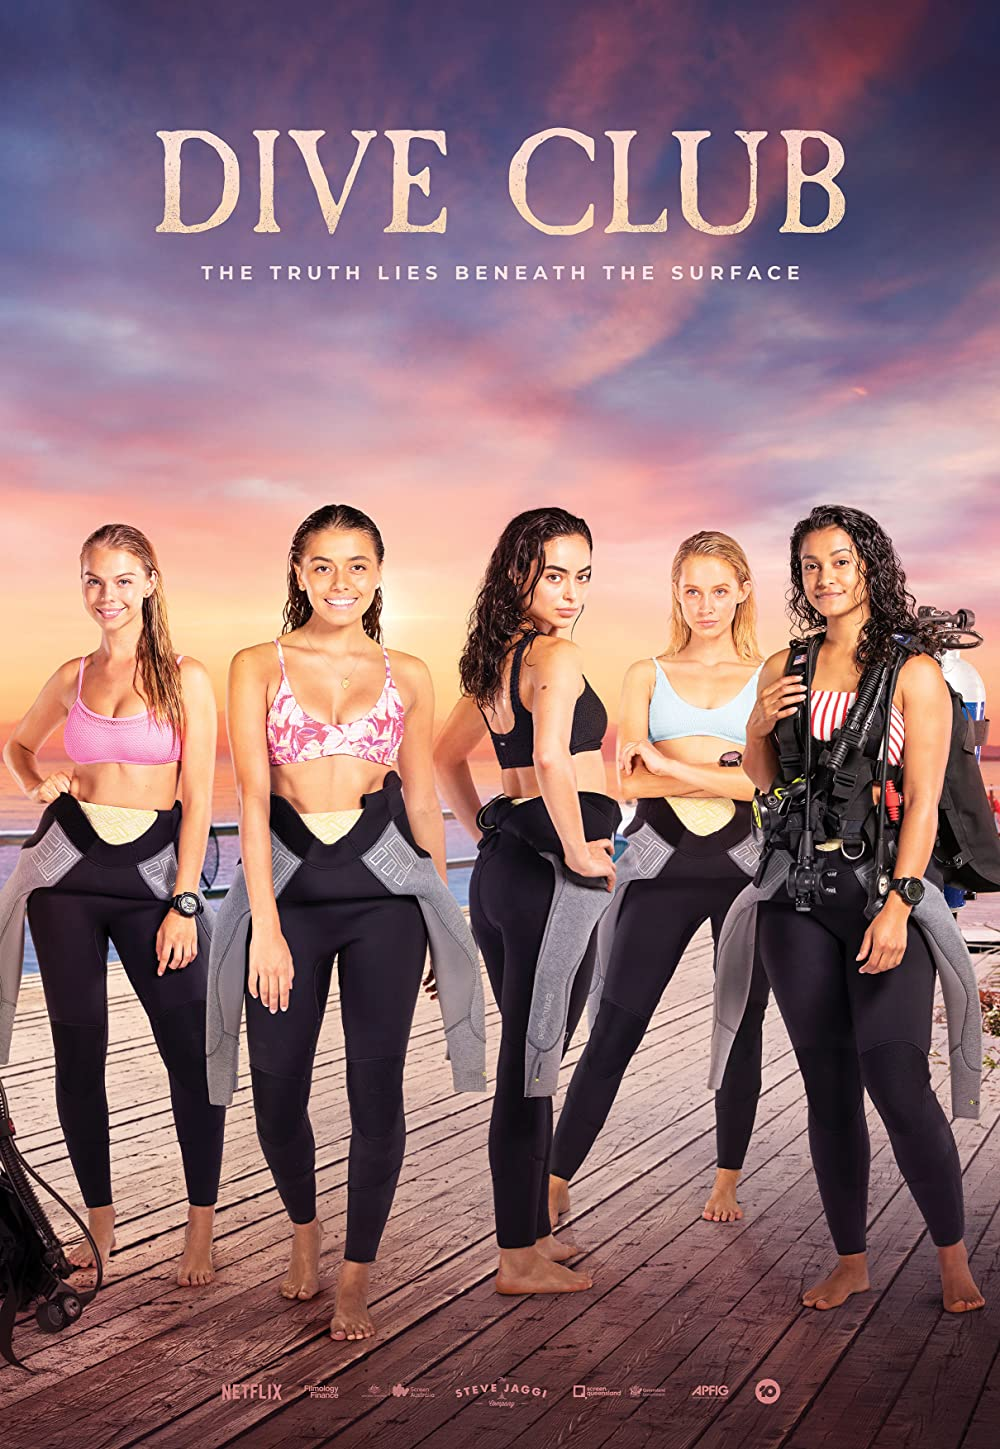 Dive Club 2021 S01 Complete Hindi Dubbed NF Series 480p HDRip 1GB x264 AAC